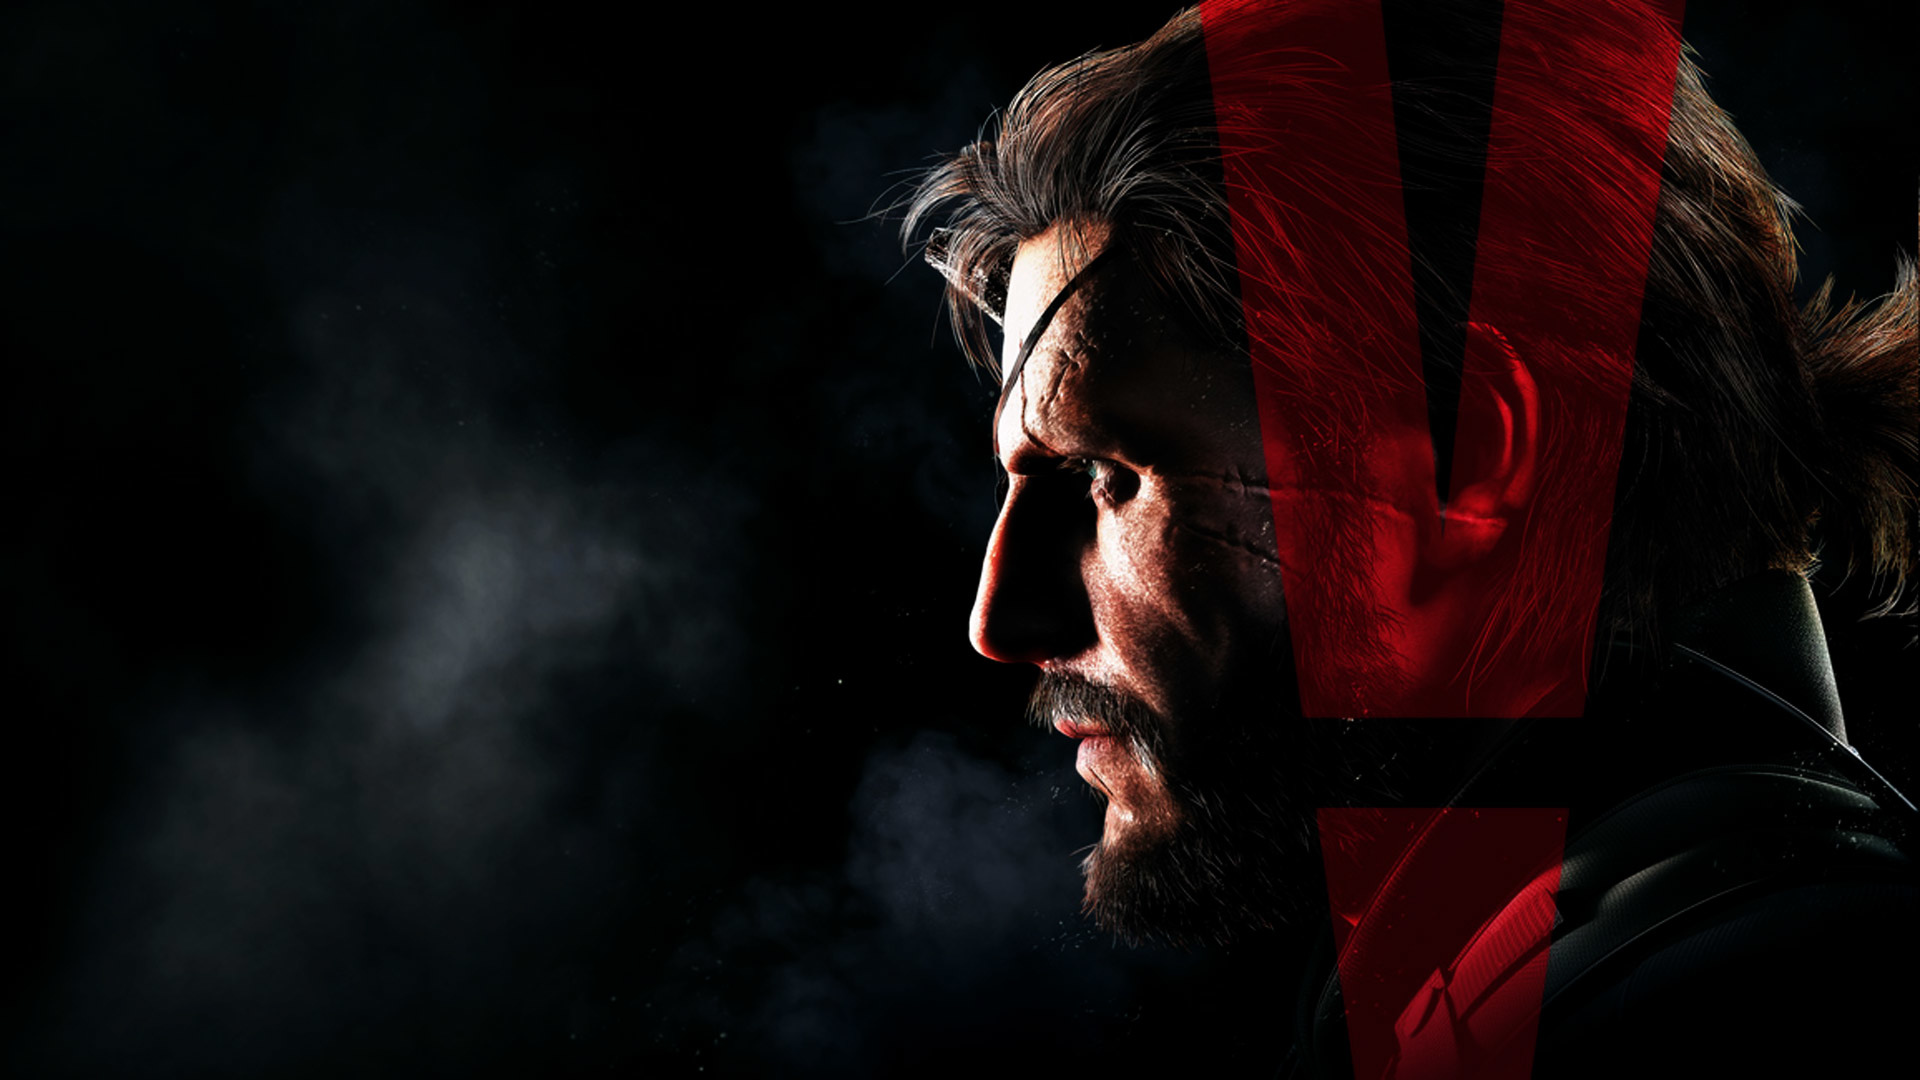 Mobile Metal Gear Solid Wallpapers.